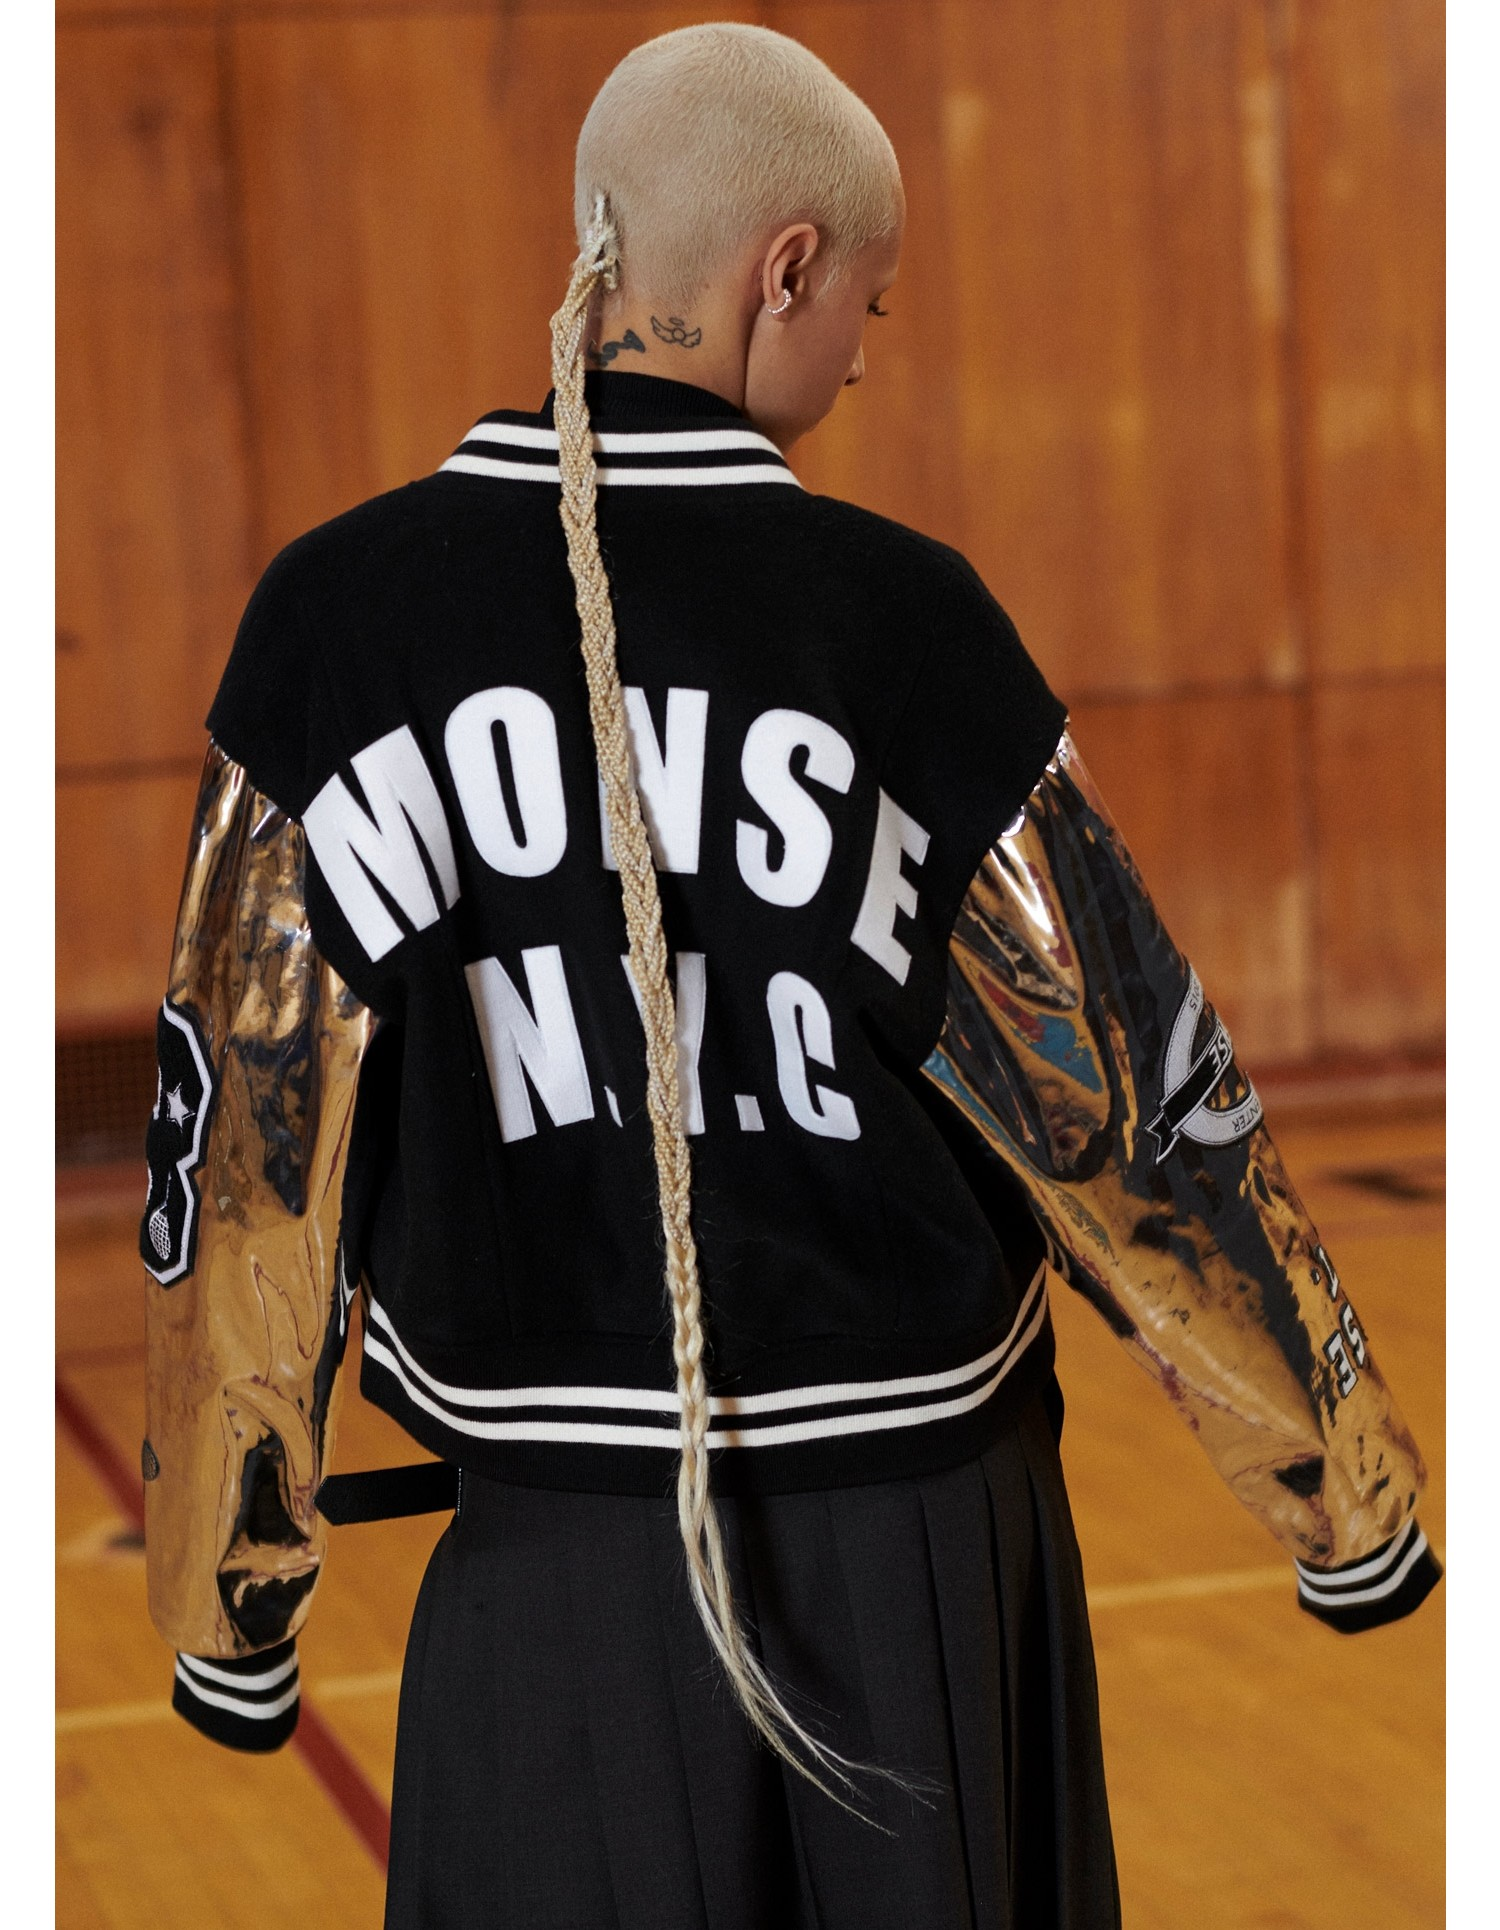 MONSE Cropped Letterman Jacket in Black and Silver on Model Back View